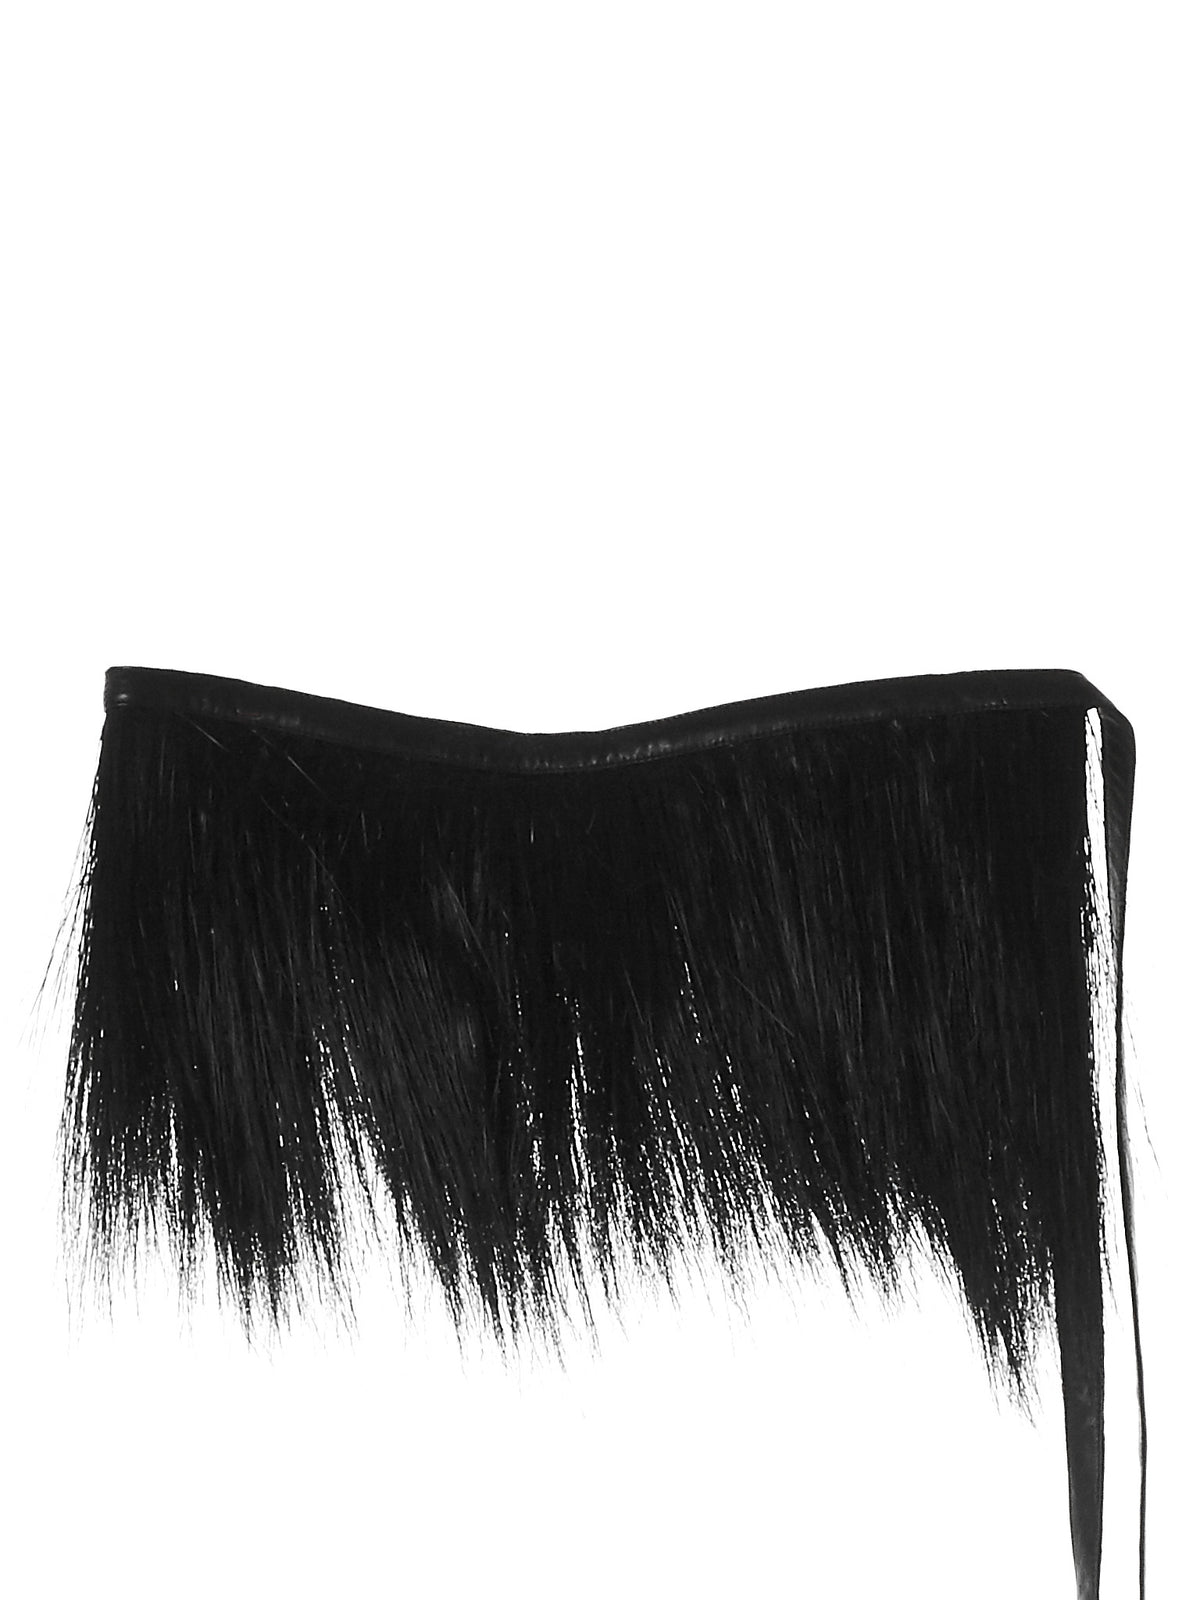 Hair-Fringed Belt (A-3-BLACK) - H. Lorenzo